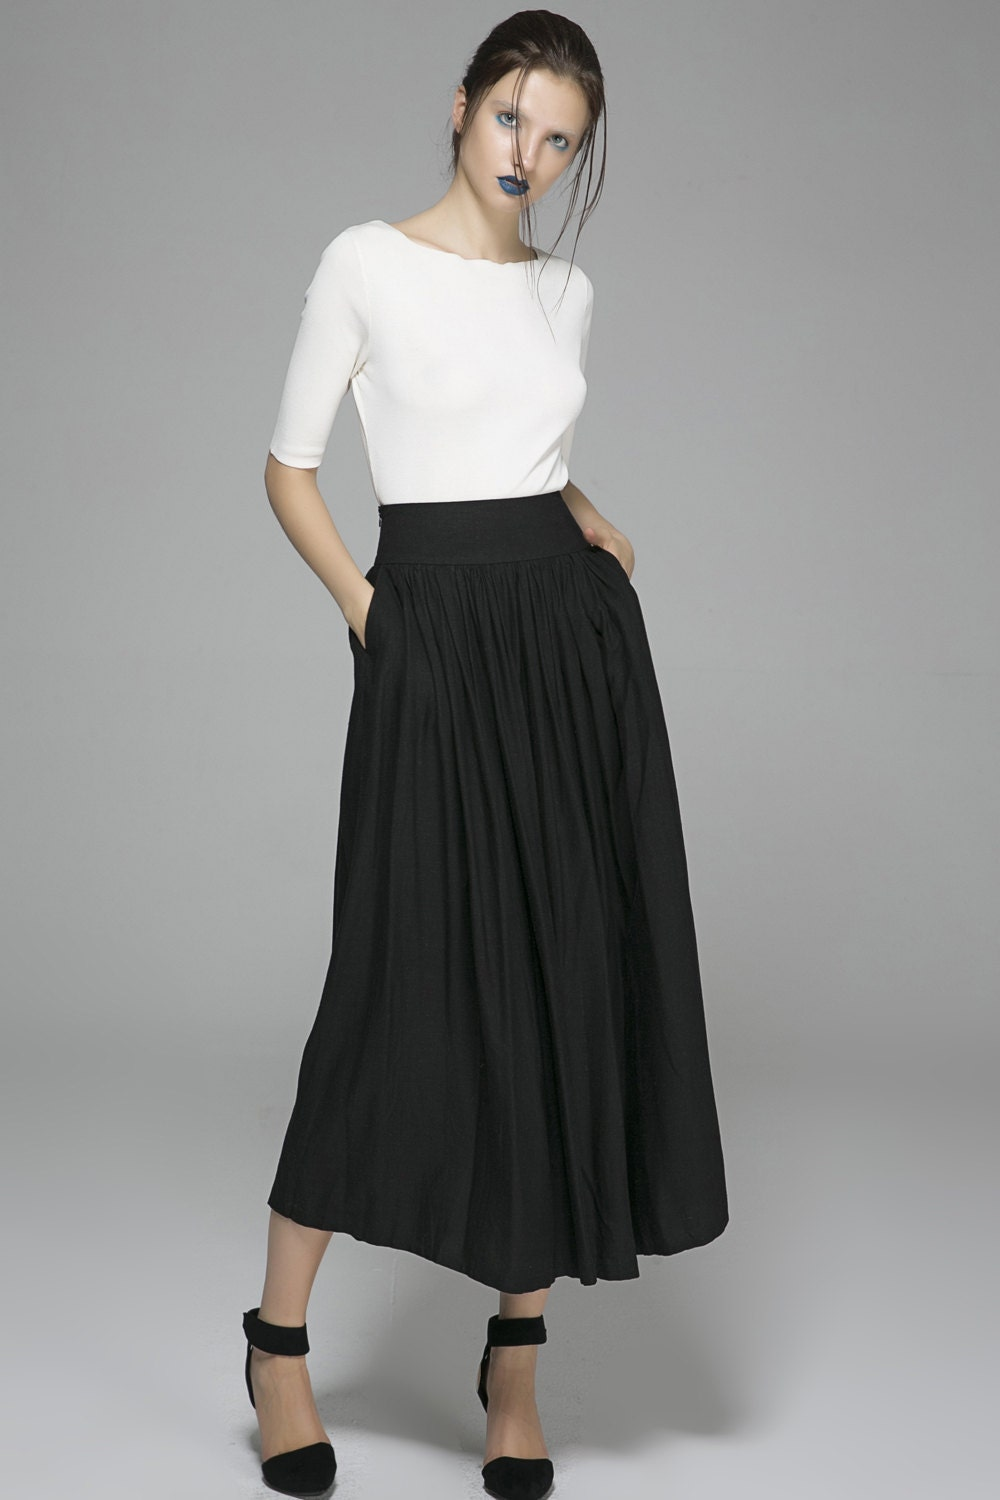 Discover sale skirts at Anthropologie, including pencil skirts, maxi skirts, circle skirts & more.